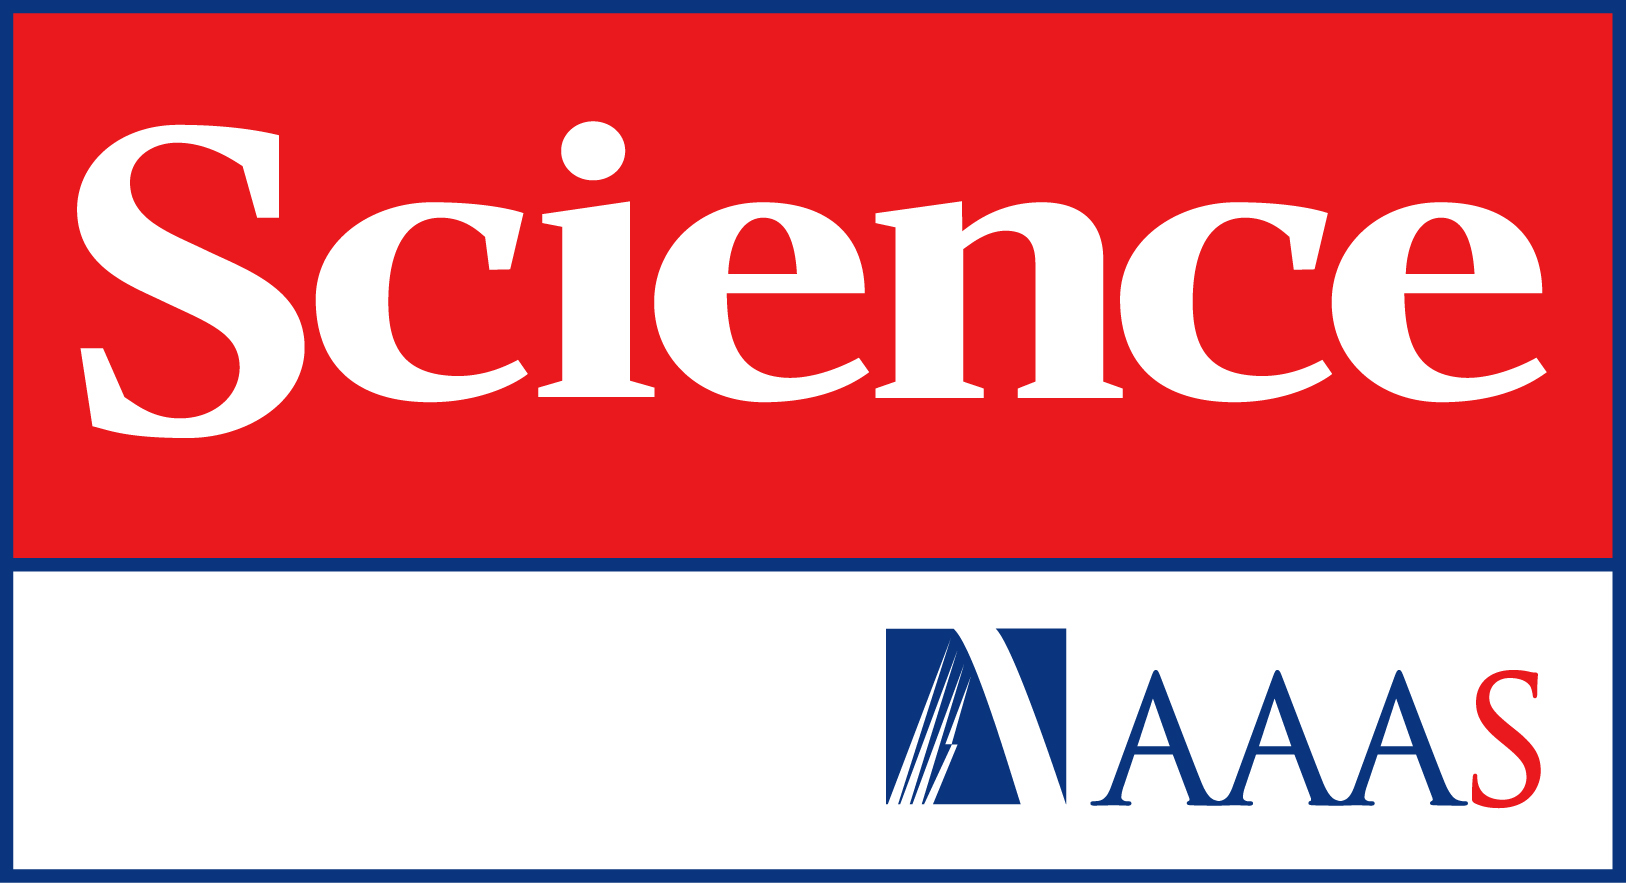 Science (AAAS magazine) logo